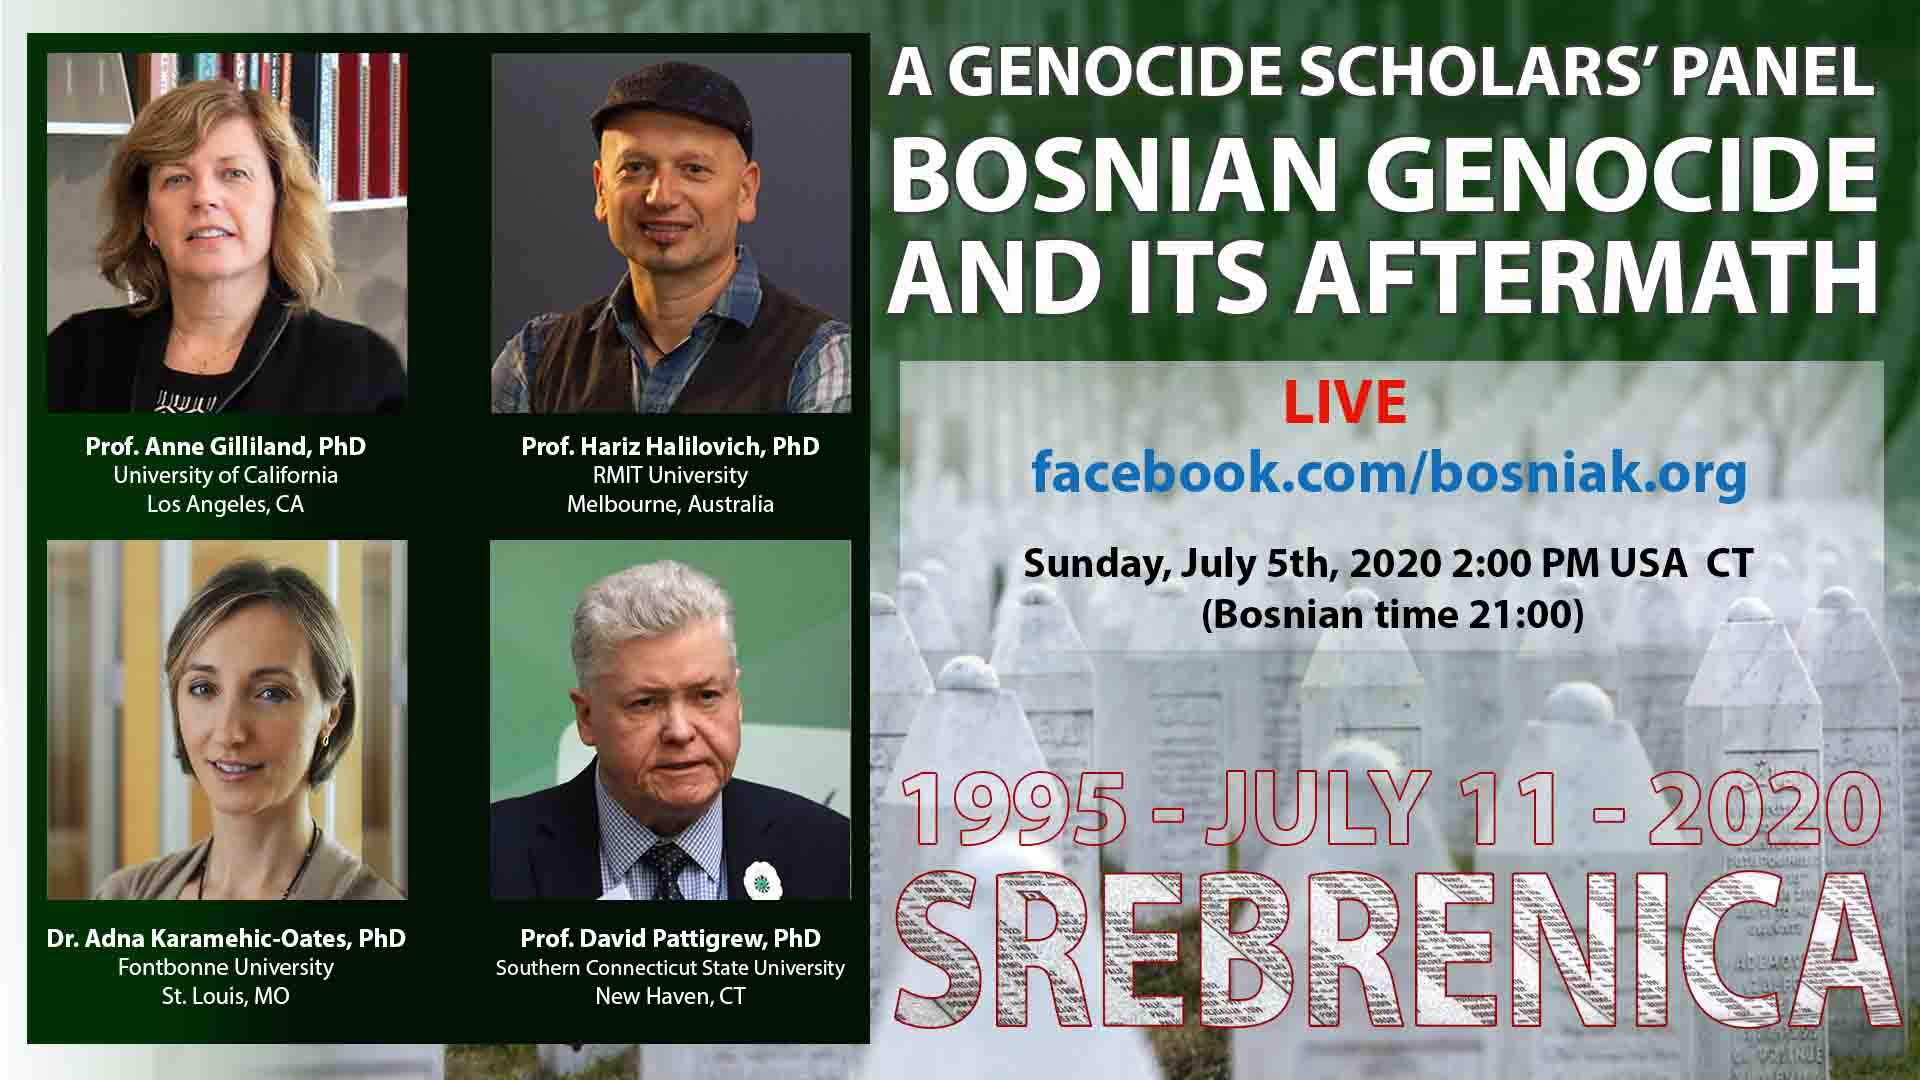 Panel: Bosnian Genocide And Its Aftermath